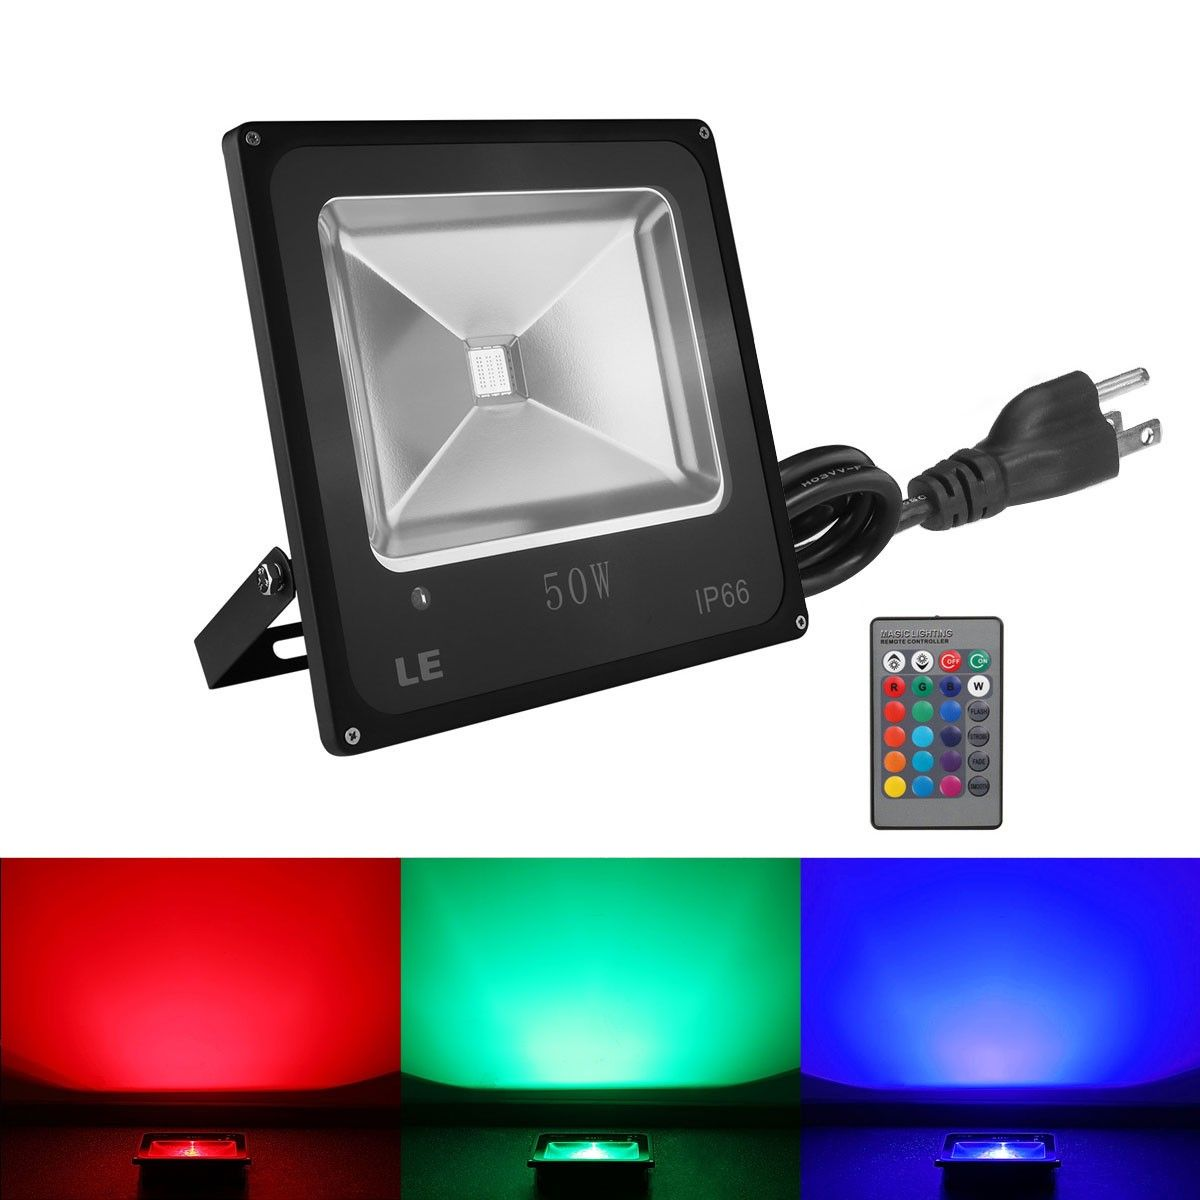 50w rgb led security flood lights color changing 16 colors 4 online shopping for le remote control rgb led flood light 16 colors 4 modes color changing waterproof led security flood light various shapes types mozeypictures Gallery